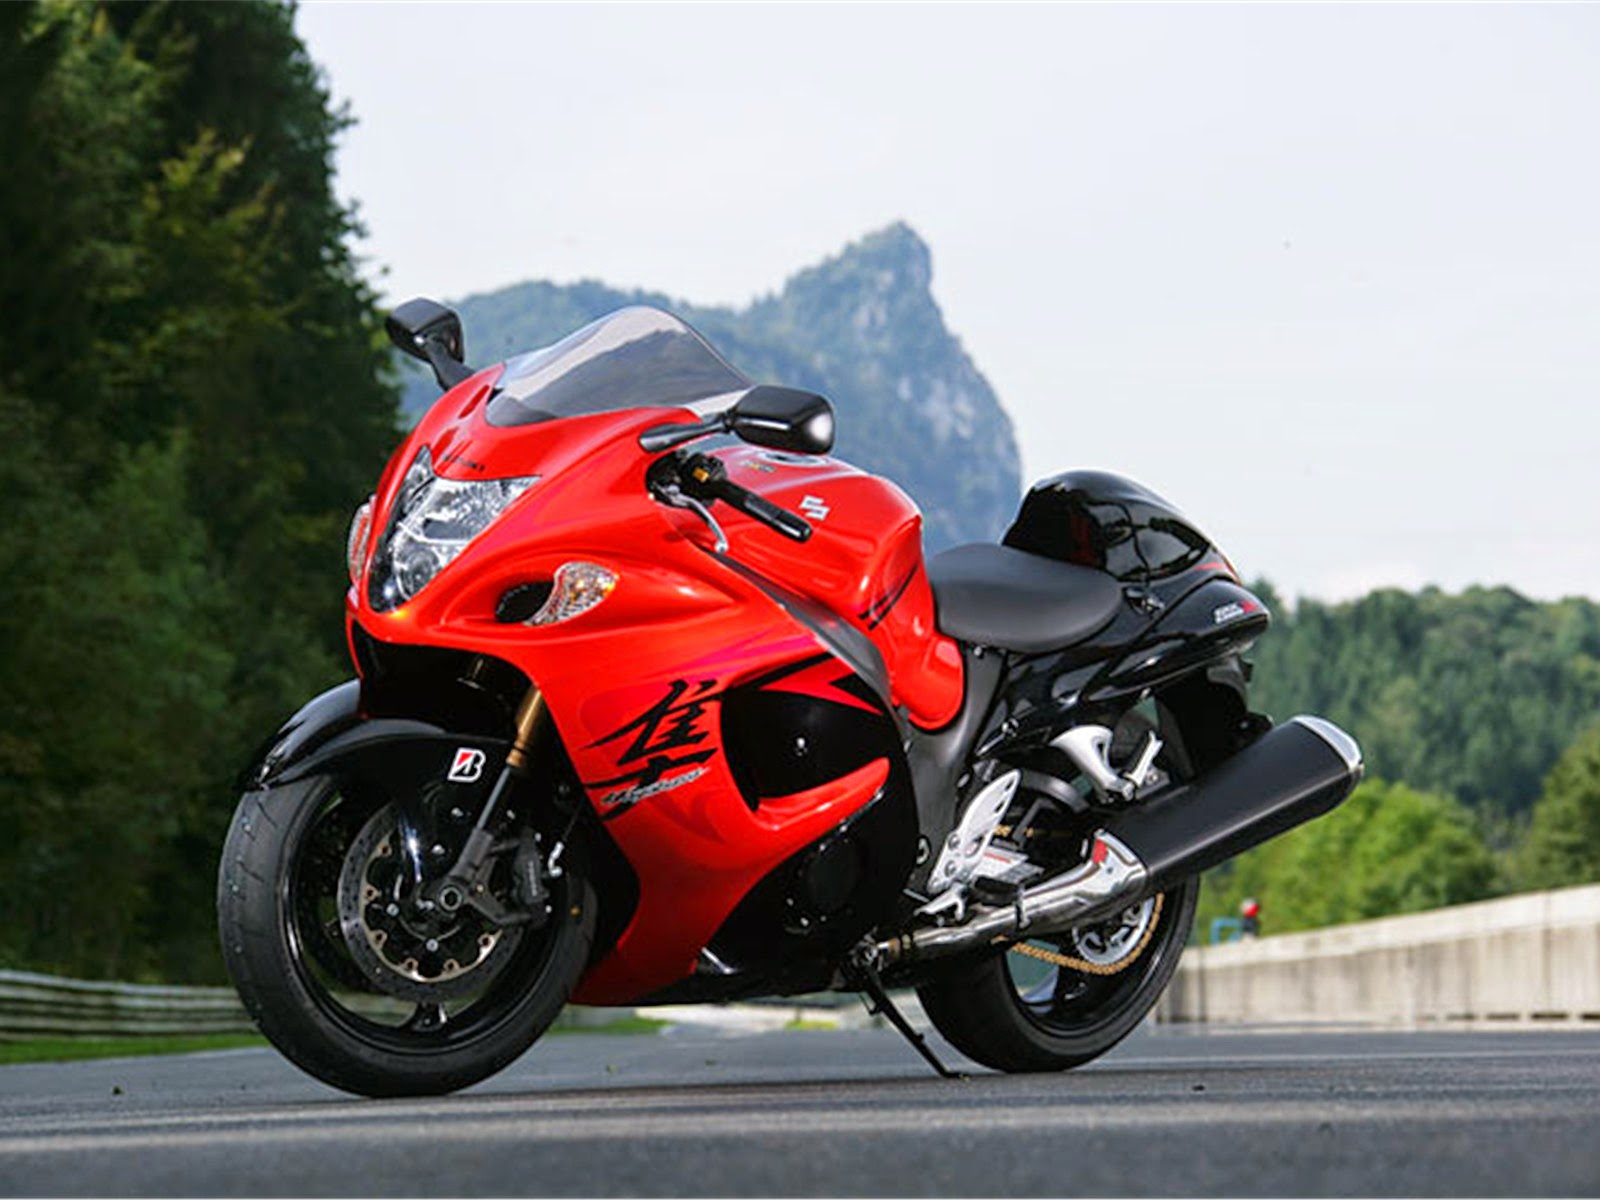 Suzuki Hayabusa Top 10 HD Wallpapers Specification Price 1600x1200